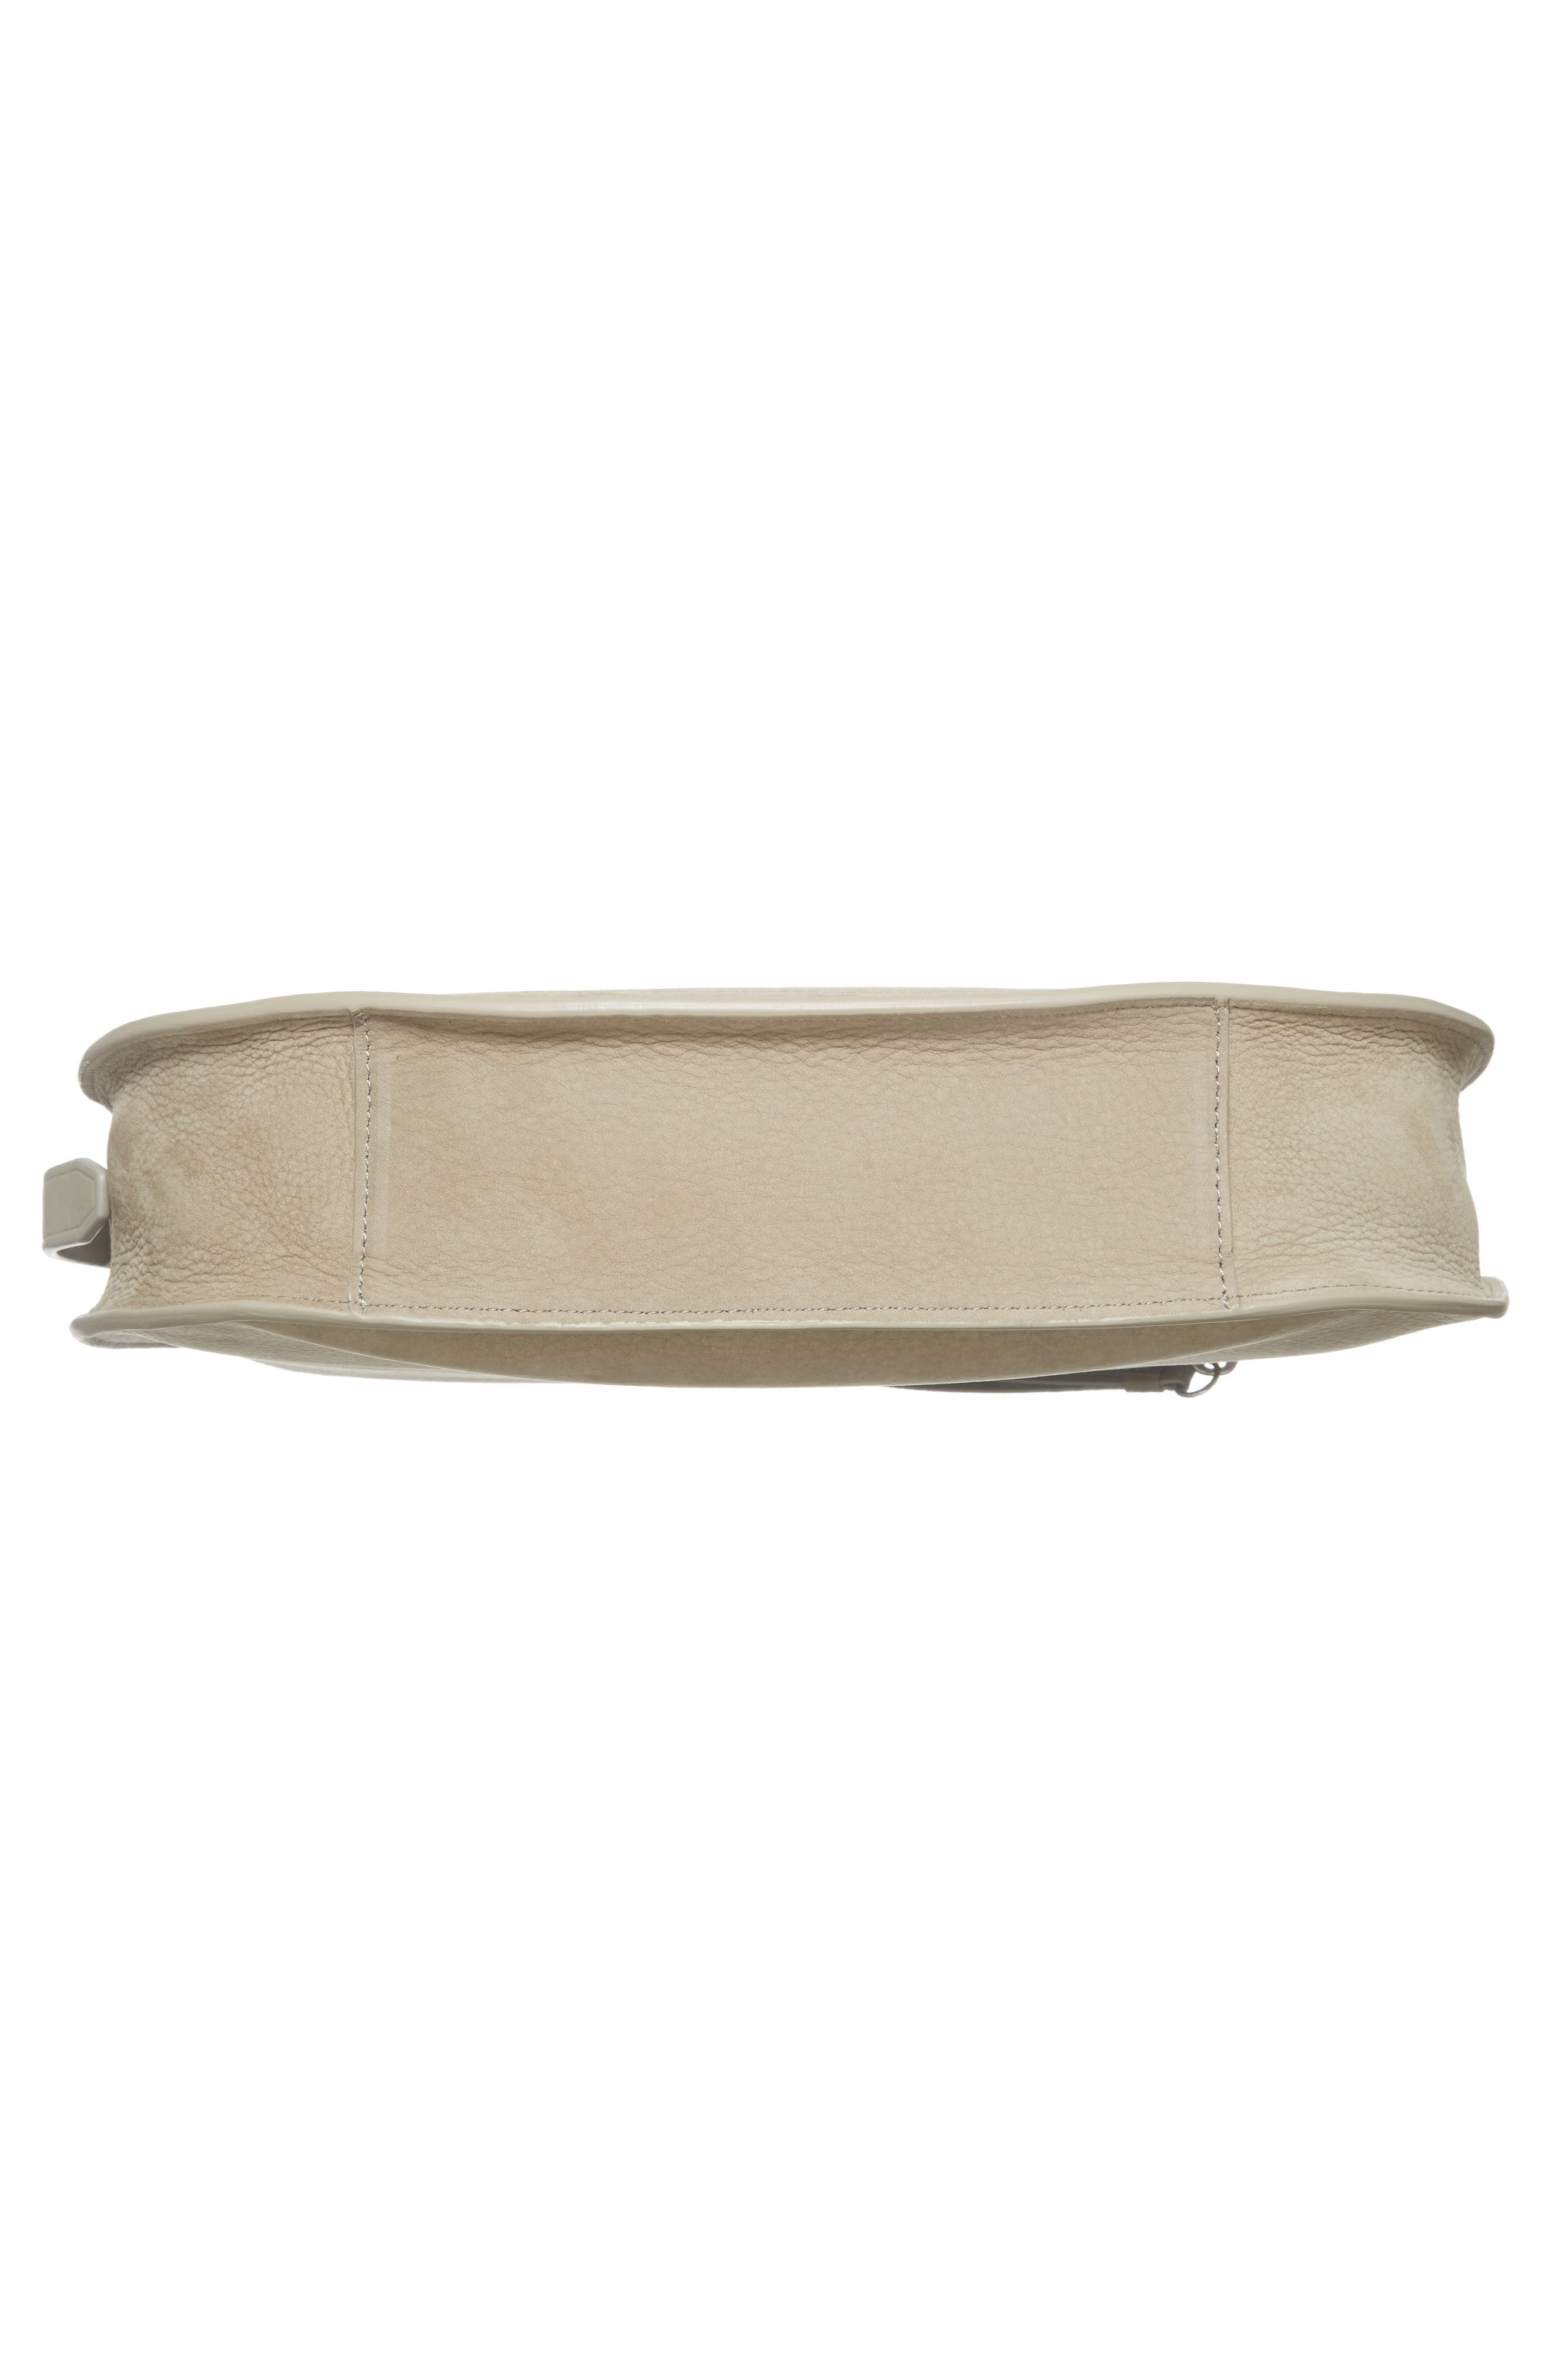 Cooper Nubuck Hobo,                             Alternate thumbnail 6, color,                             Light Cement Grey